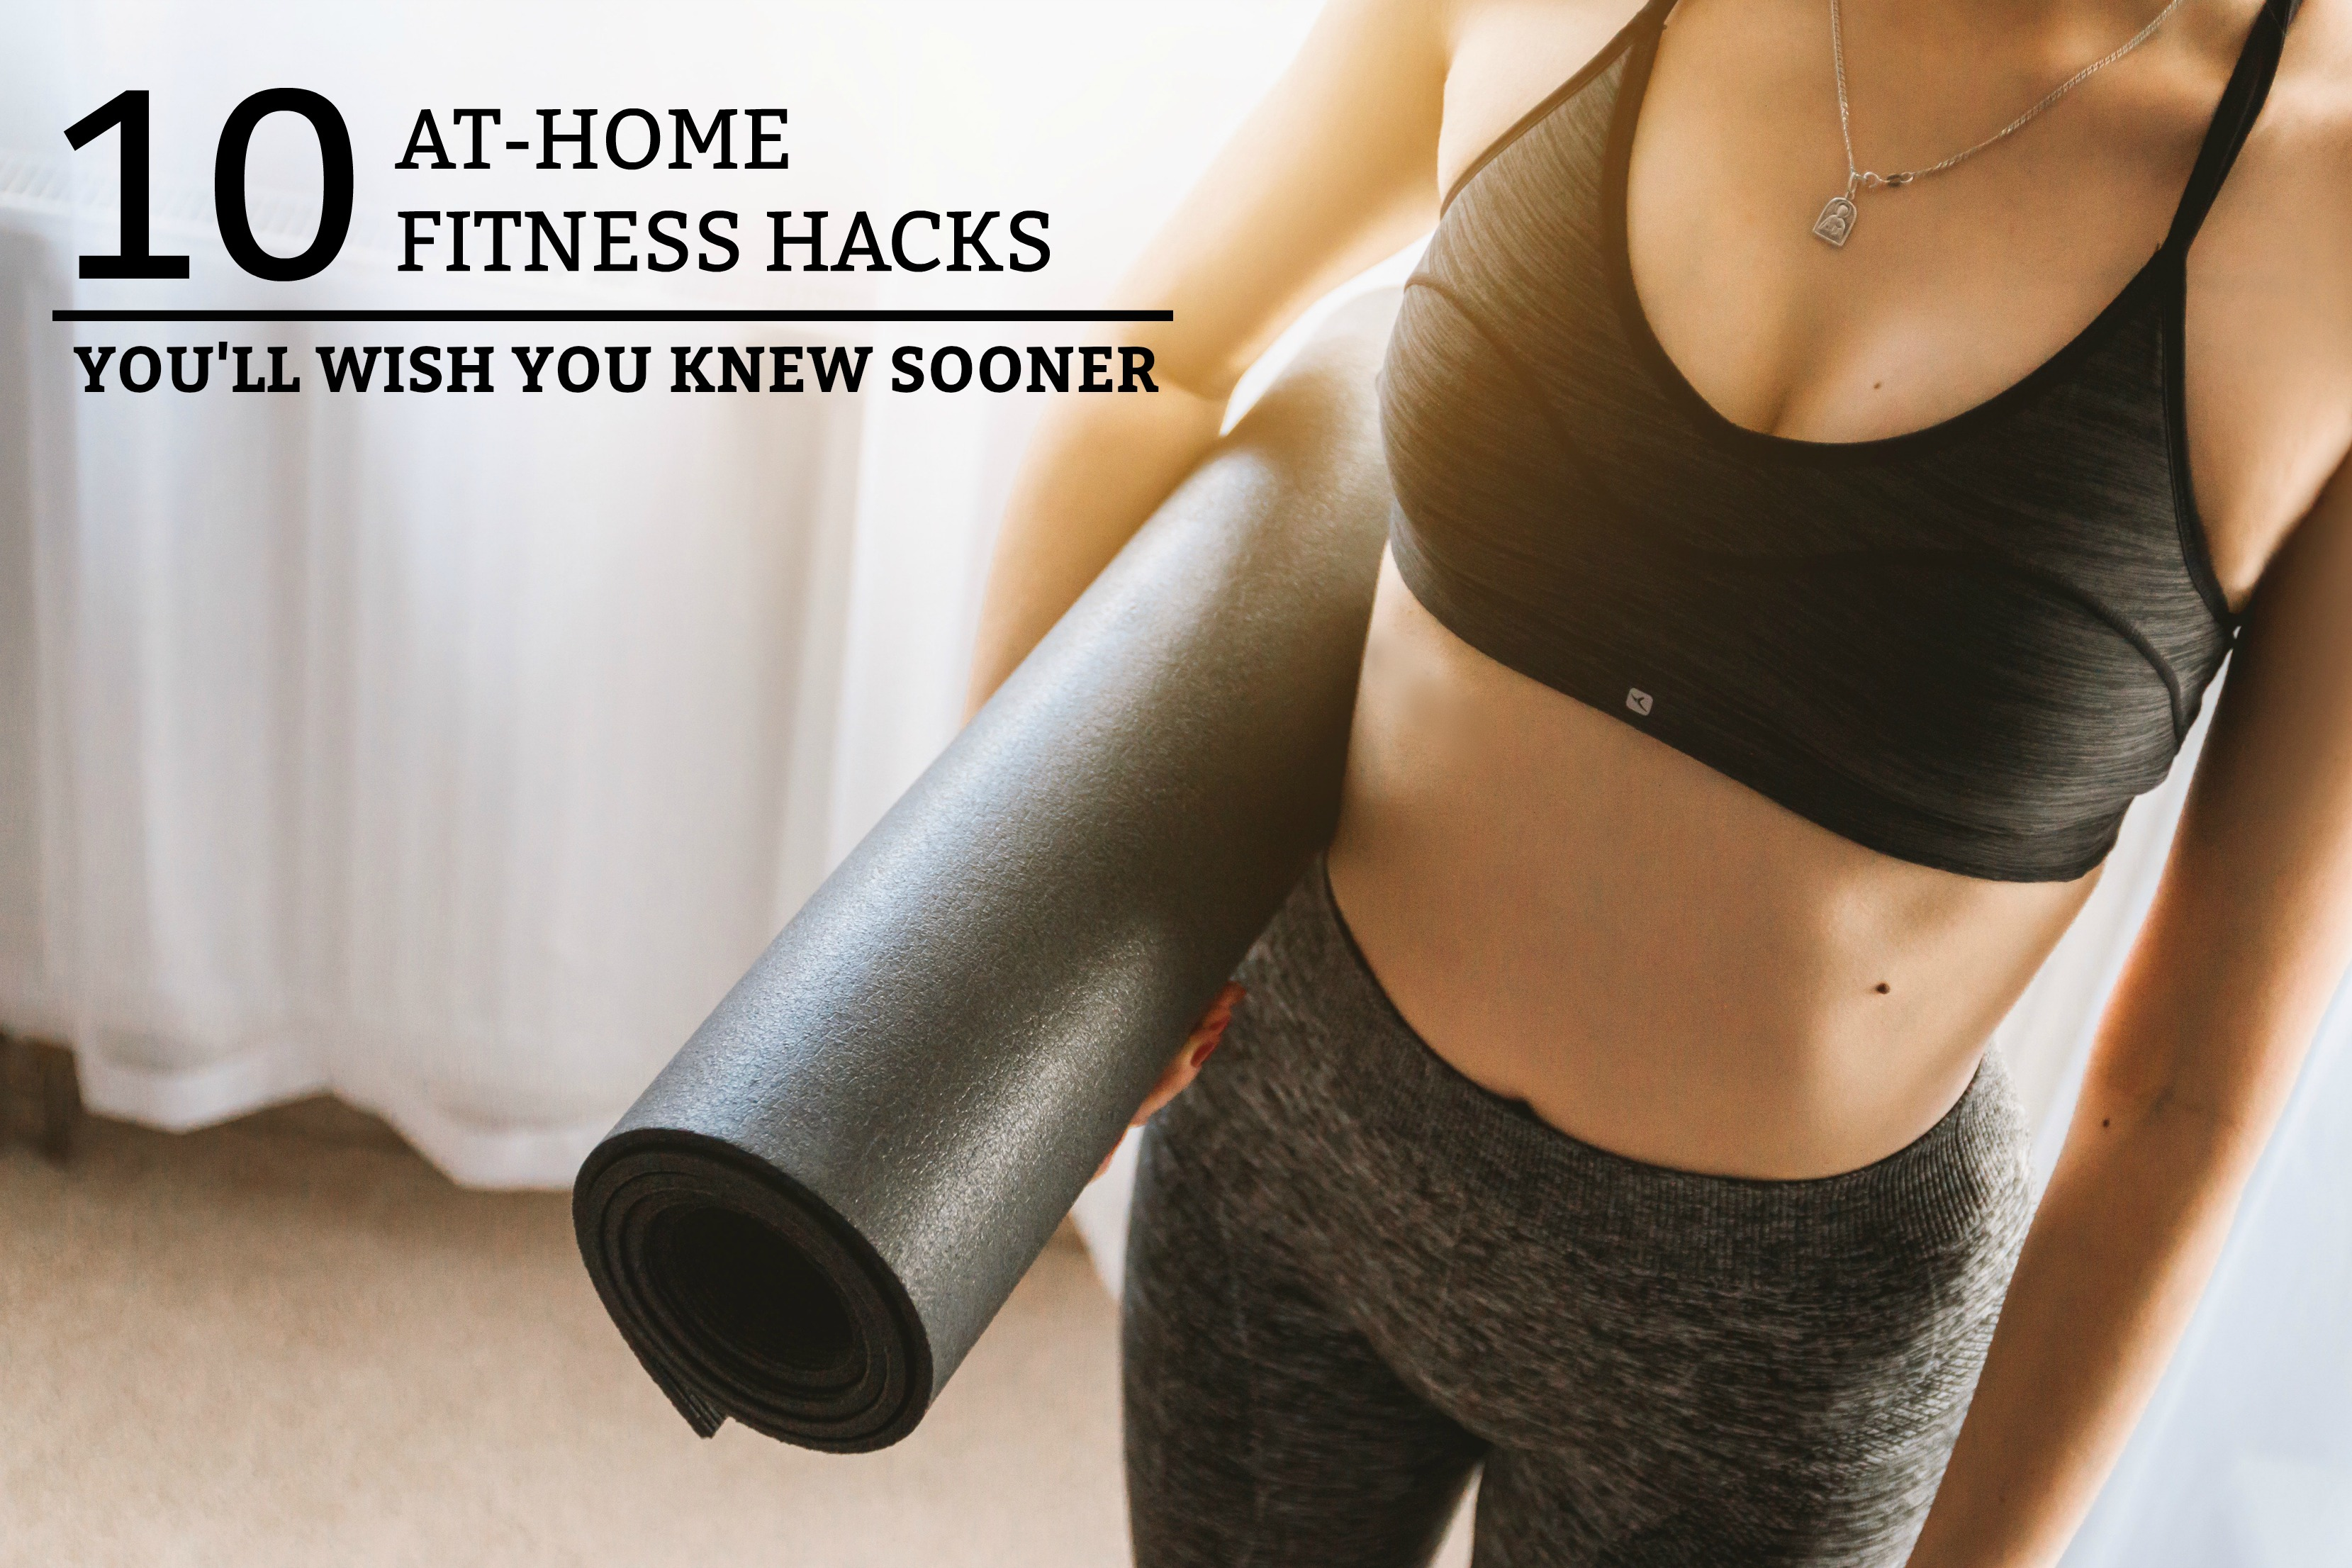 10 At-Home Fitness Hacks You'll Wish You Knew Sooner - a practical guide to working out in the comfort of your home. www.tradingaverage.com